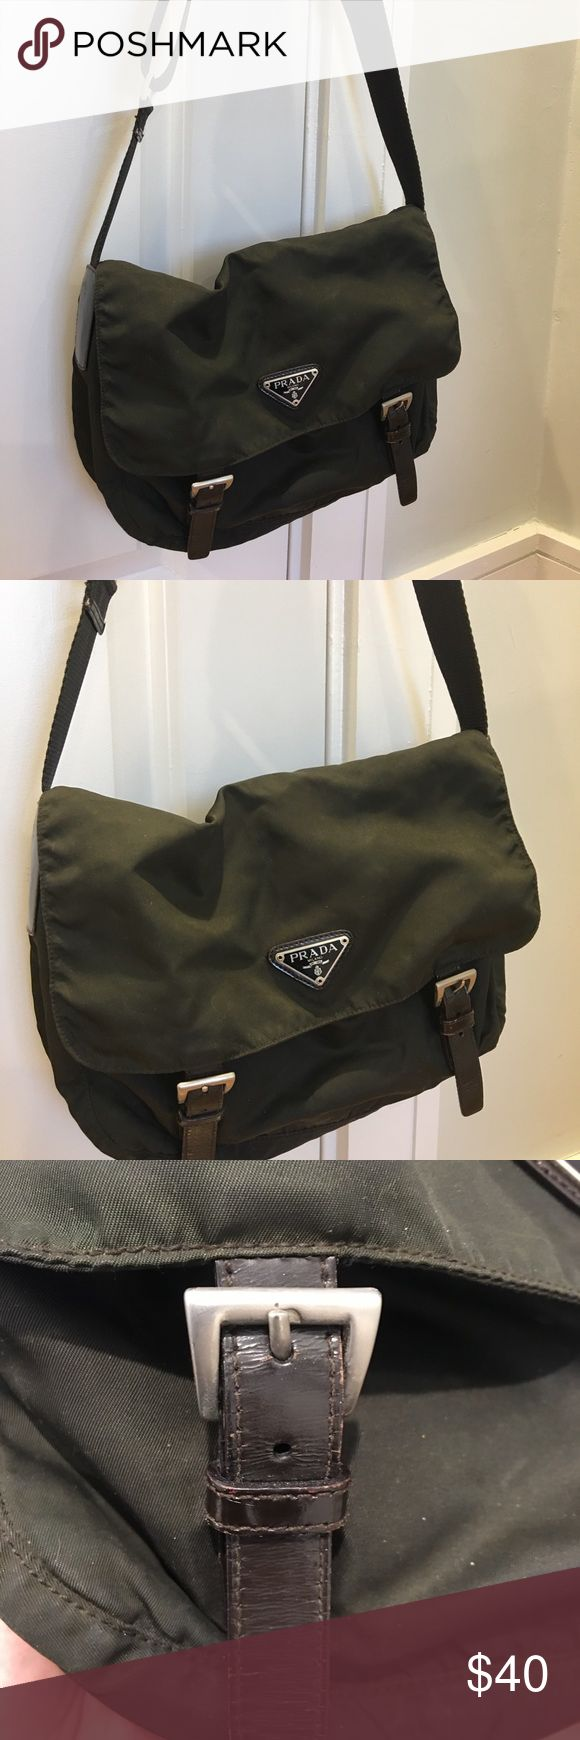 Prada Messenger Brown Prada messenger bag w/ adjustable strap. In used condition (see photos). Biggest sign of wear is the tear along interior seam, could be easily repaired! 100% authentic Prada Bags Crossbody Bags